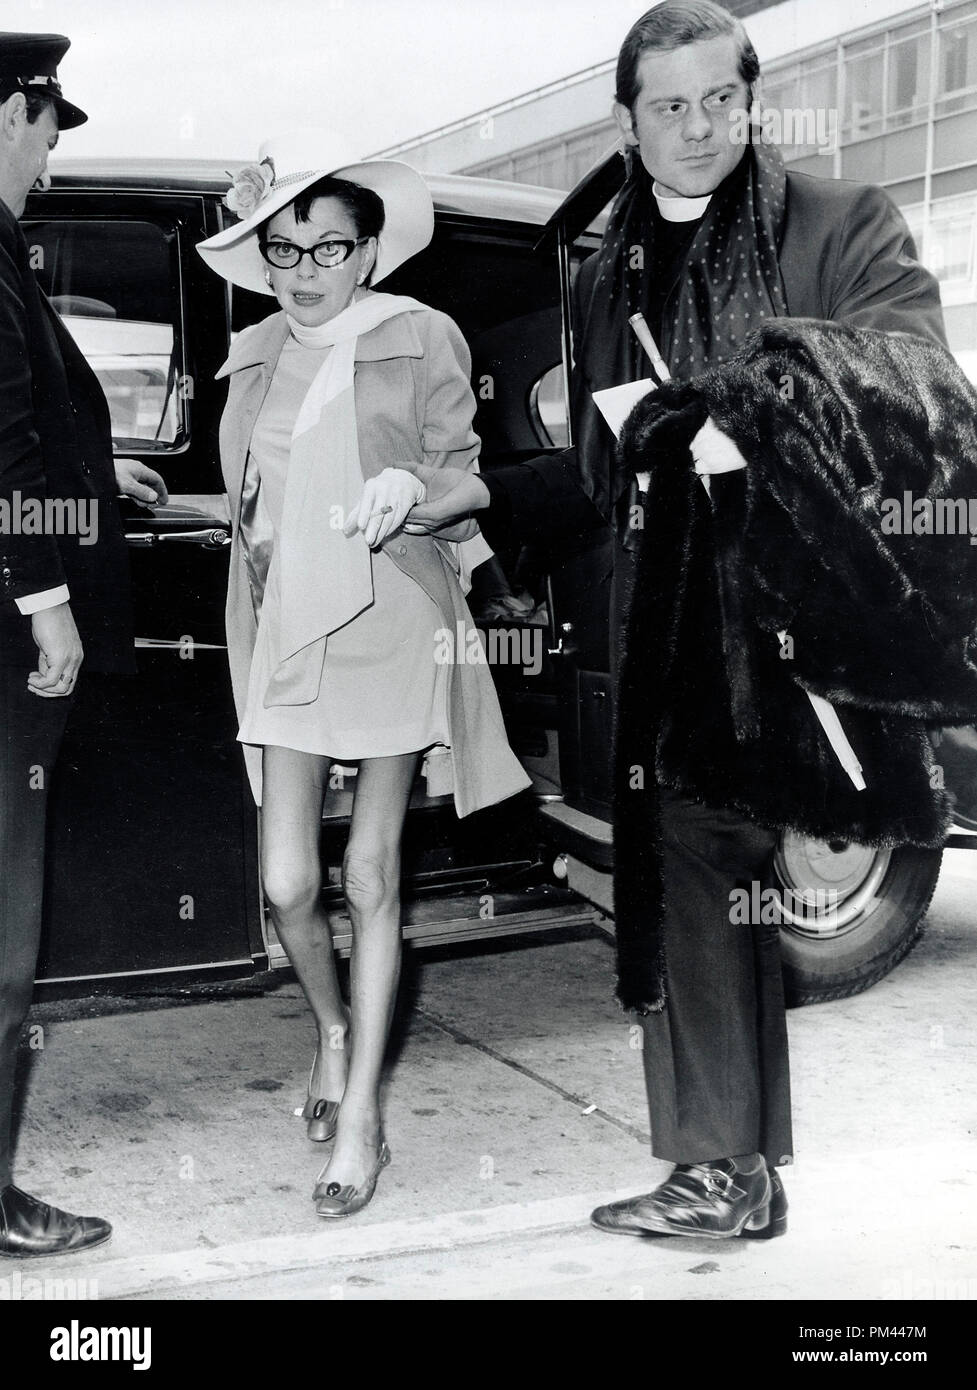 Judy Garland At Age 46 Arrives At London Airport With Husband Rev Mickey Deans May 22 1969 File Reference 1017 002tha C Jrc The Hollywood Archive All Rights Reserved Stock Photo Alamy